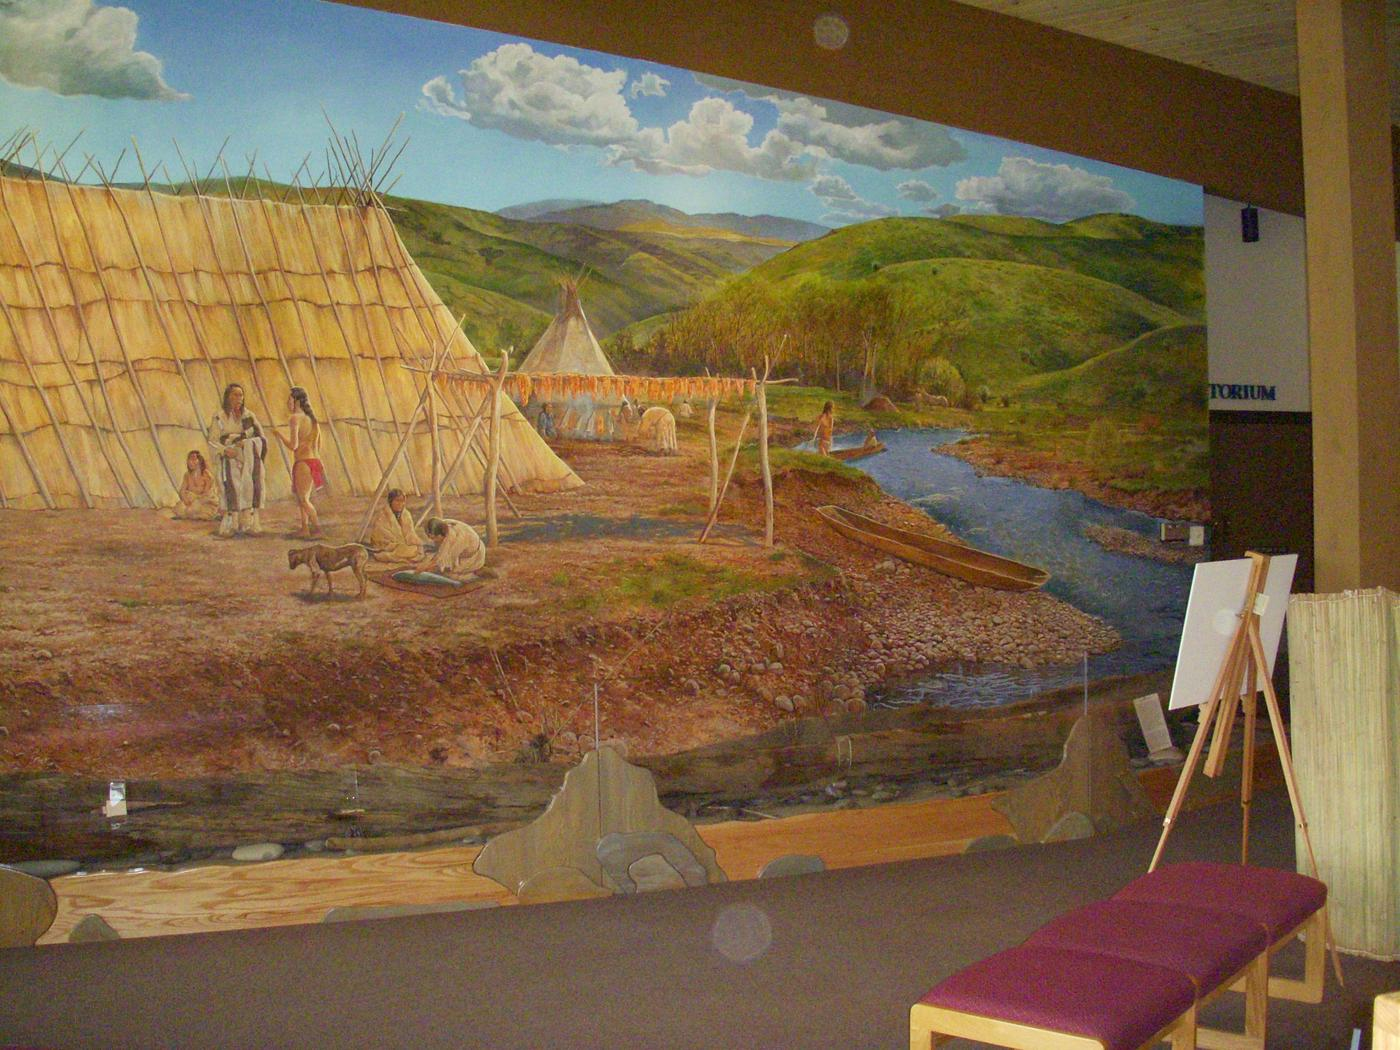 MuralThe mural in the visitor center shows what life was like for the Nez Perce who lived here hundreds of years ago.